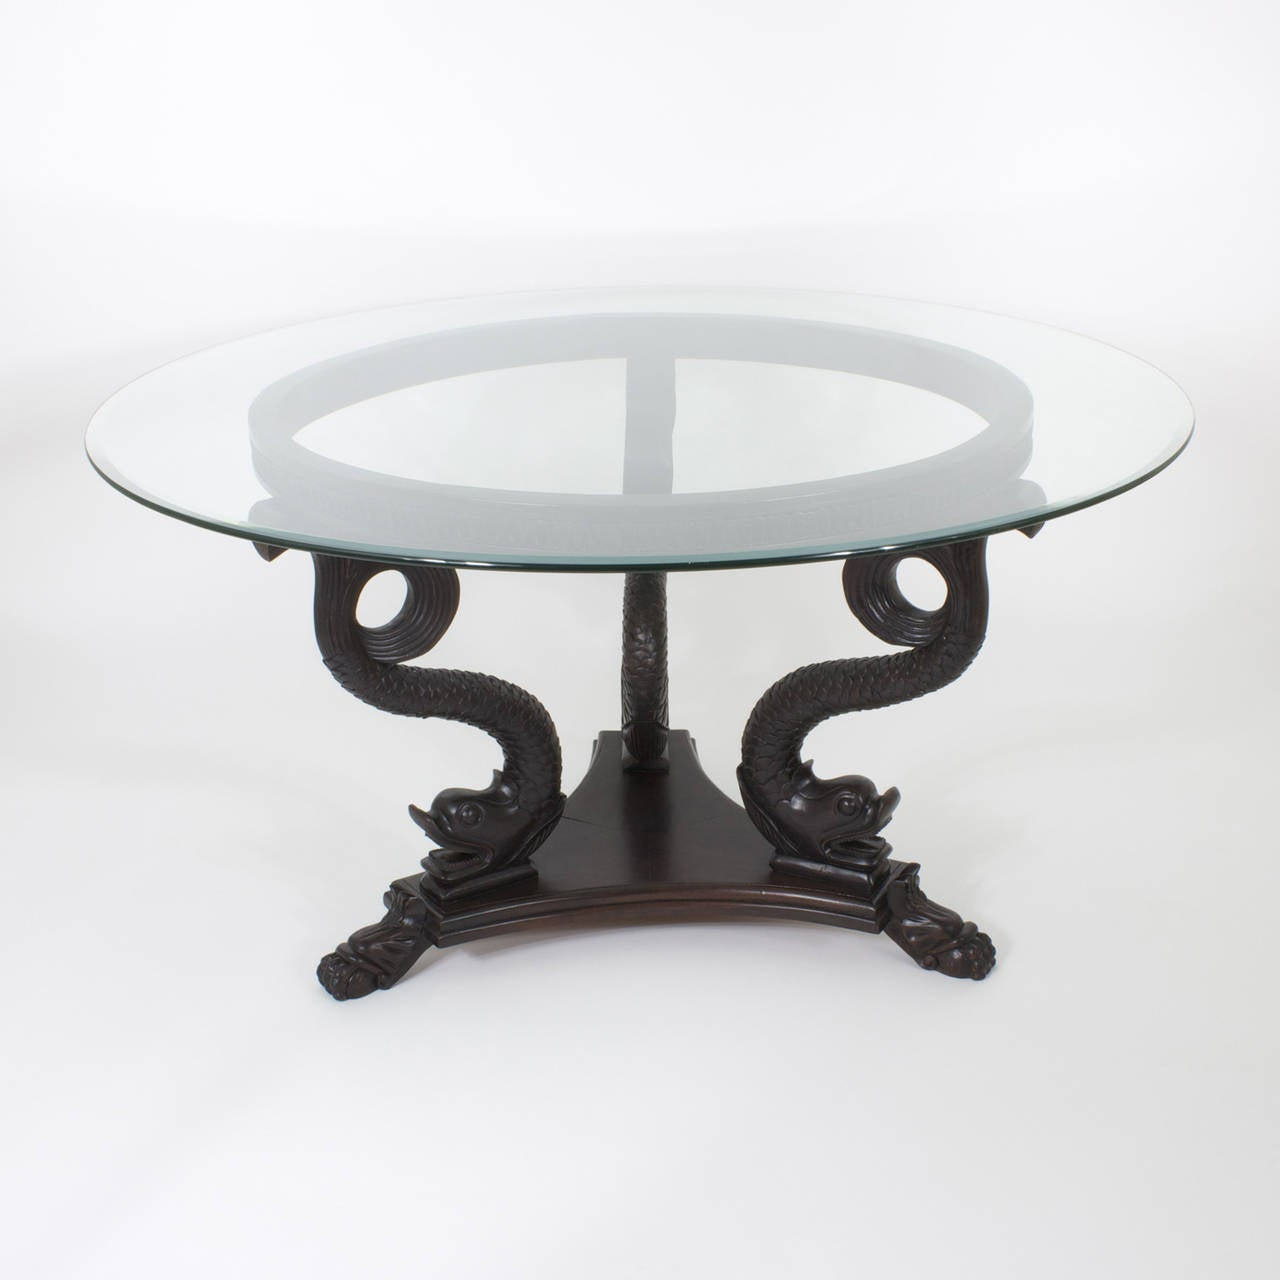 Neoclassical Style Dolphin Center or Dining Table For Sale  : 1l from www.1stdibs.com size 1280 x 1280 jpeg 54kB